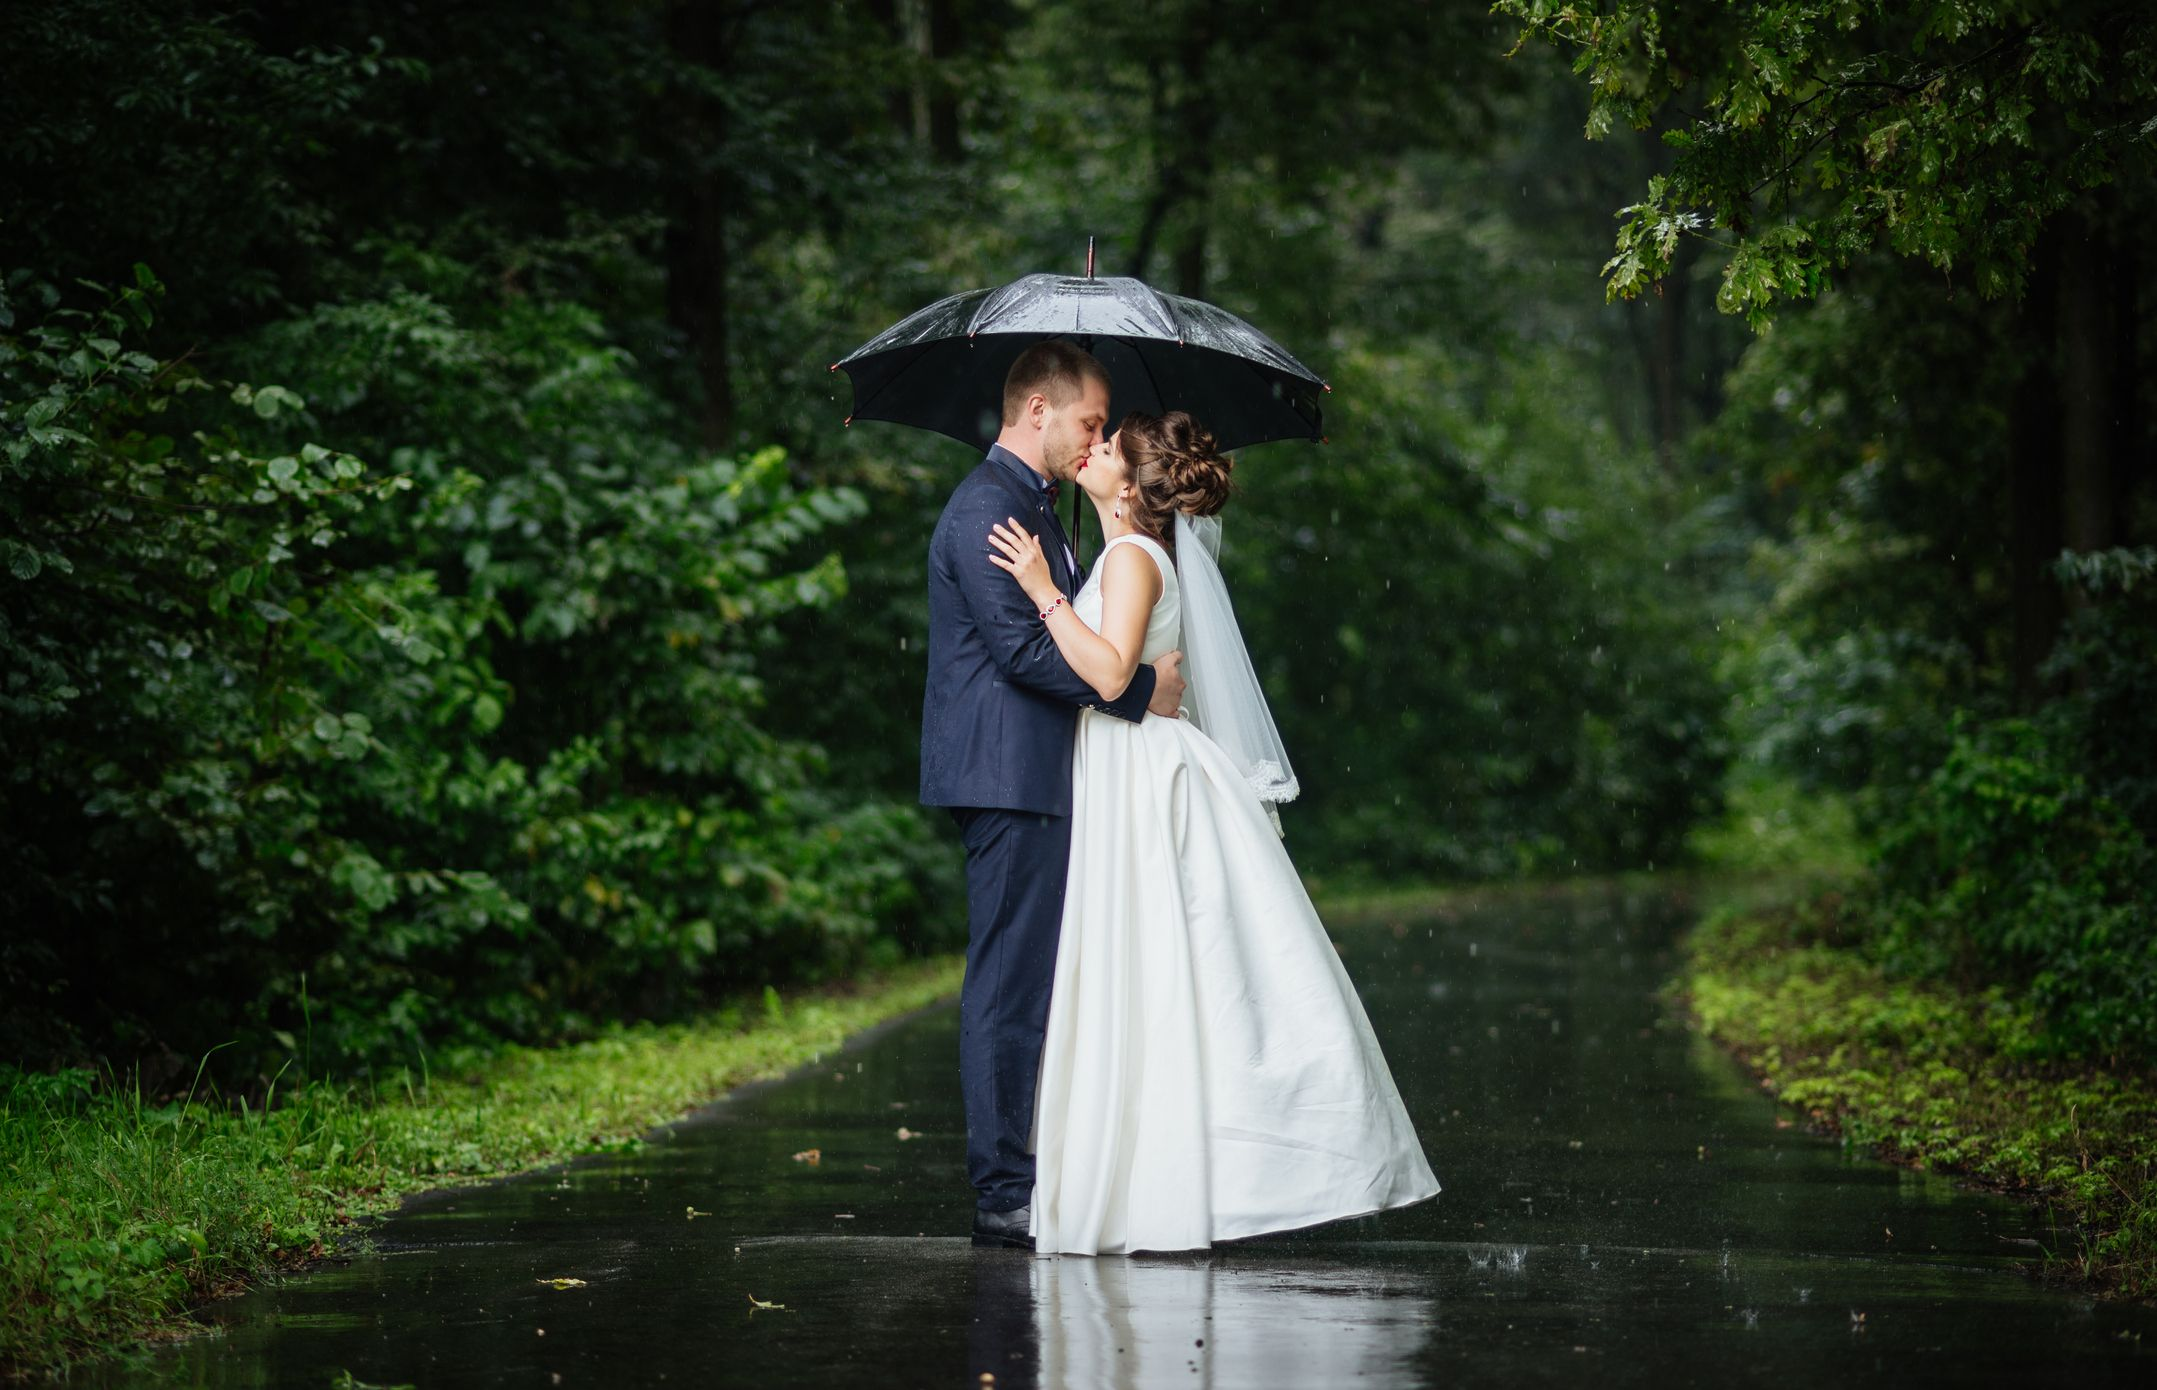 This is how to tell if it will rain on your wedding day, apparently